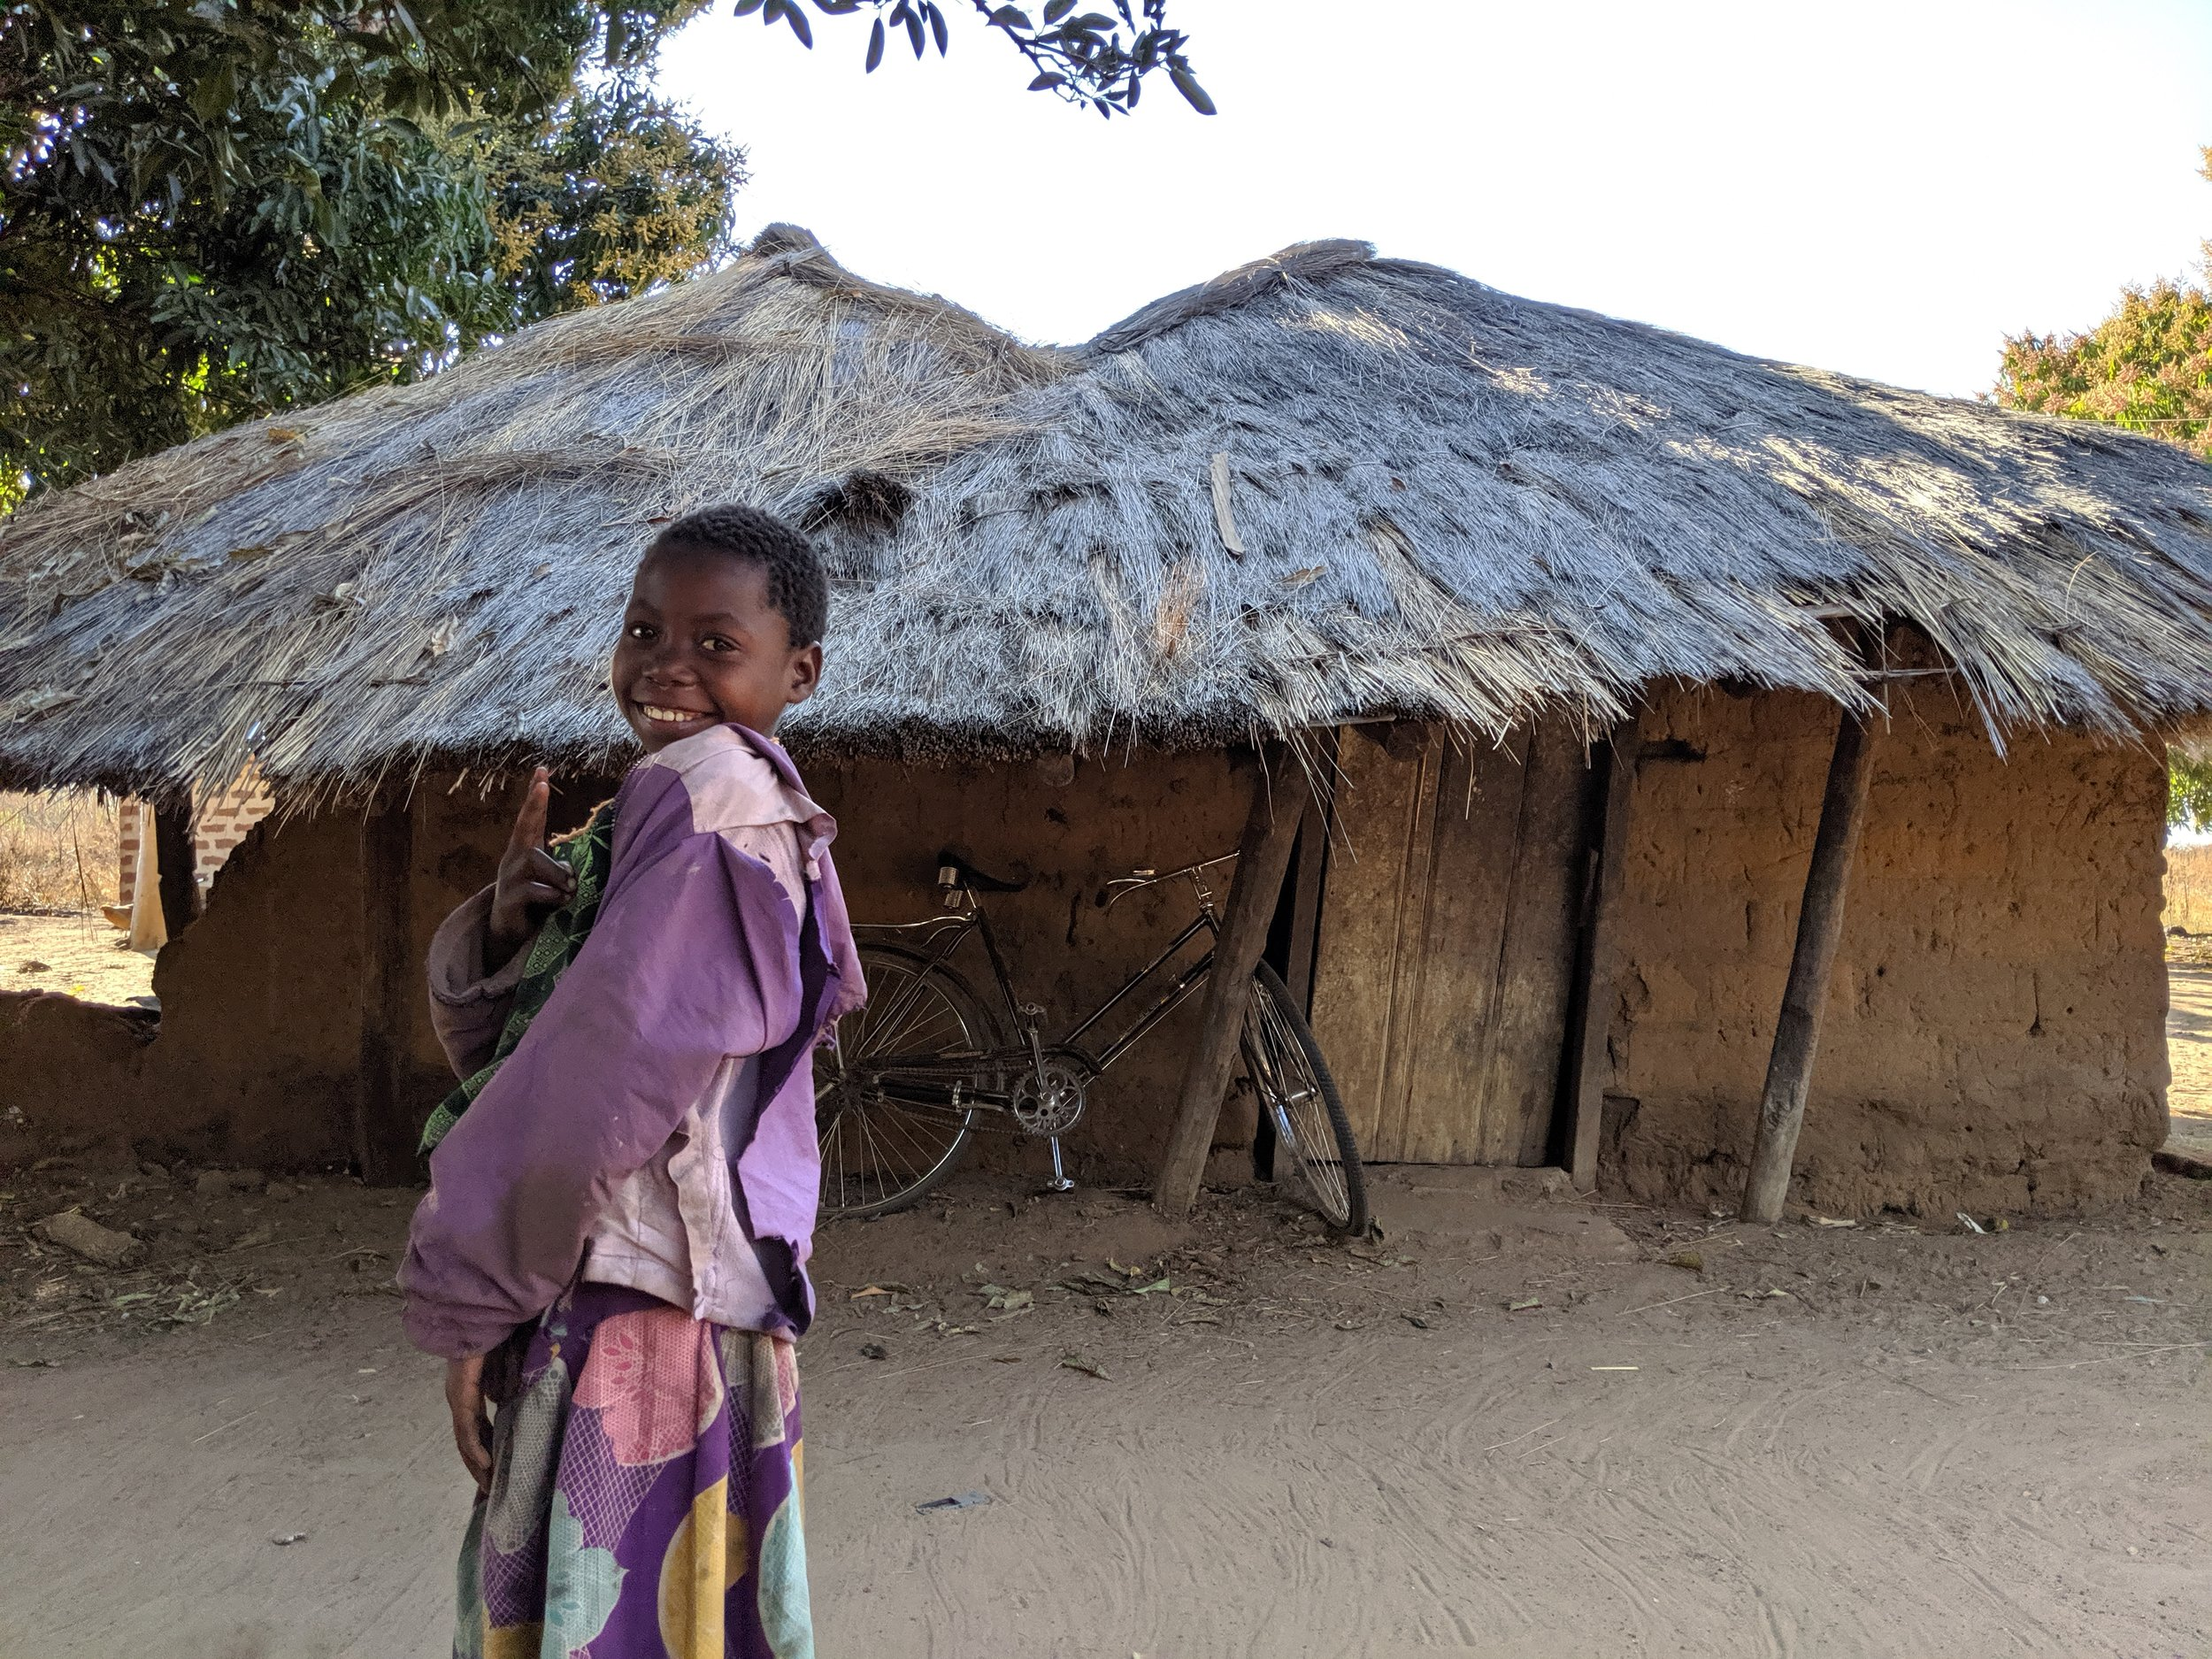 Another of Charles's family's houses. The girl pictured is one of the daughters of the piggery caretakers. She's always smiling and singing to herself. She and her sisters have very pretty singing voices.